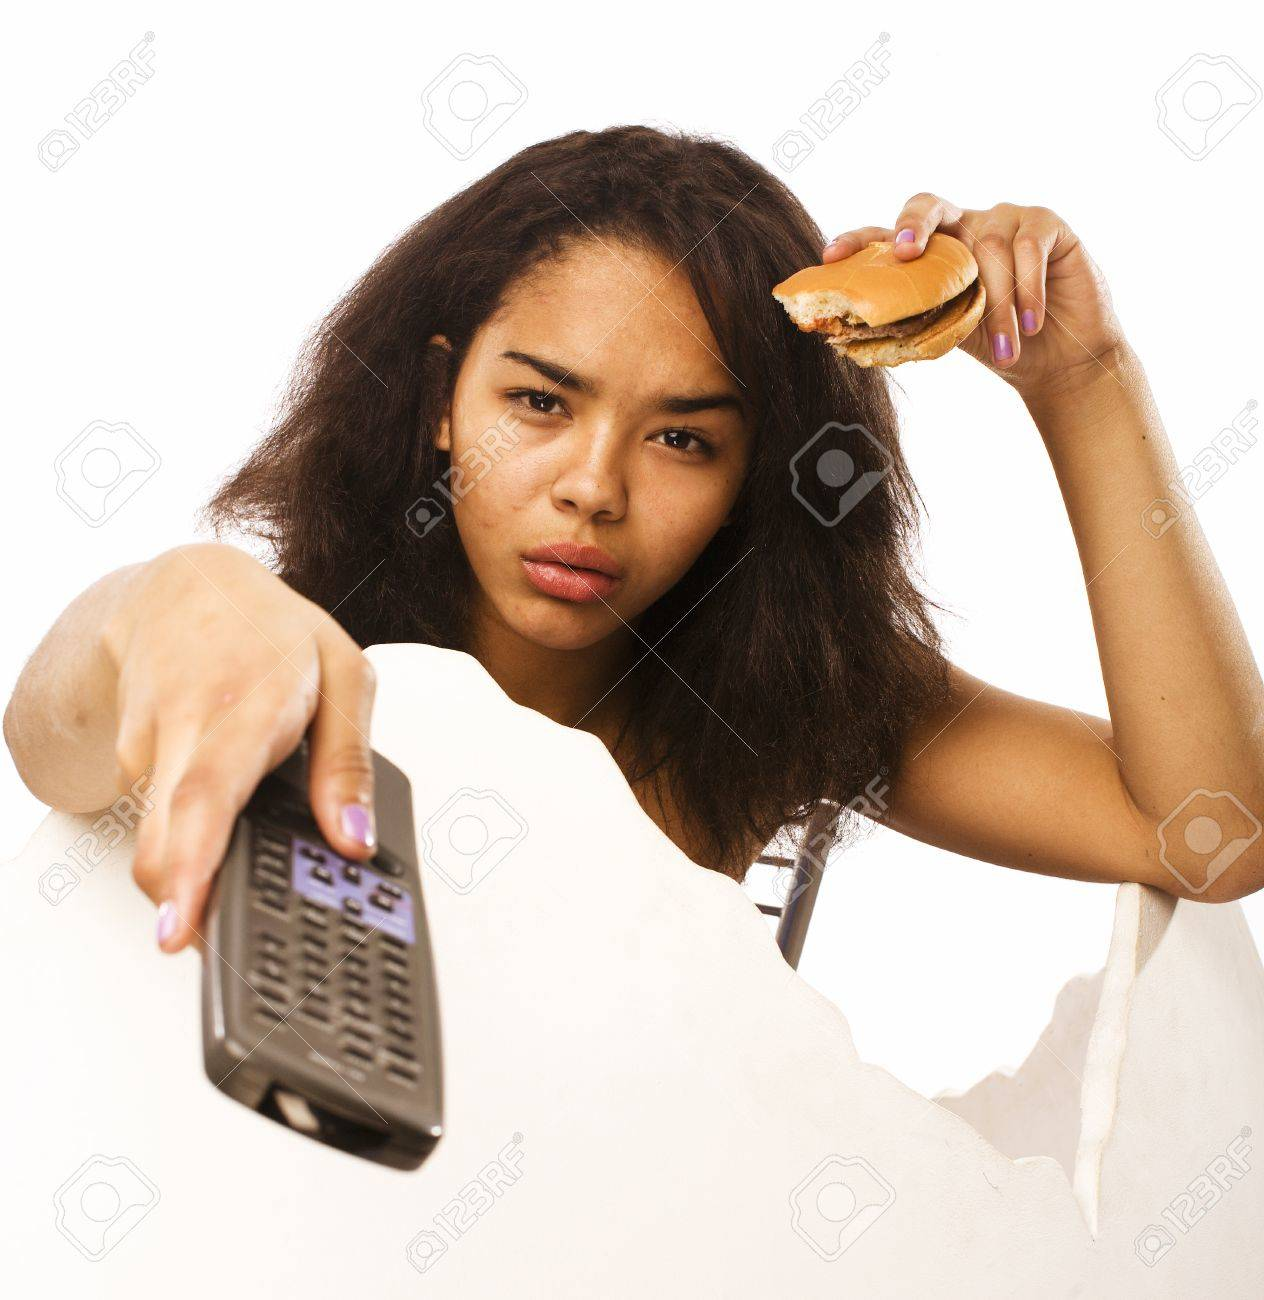 Stock Photo - young fat african american teen girl with remote and  hamburger isolated, unhealthy obsessed on white